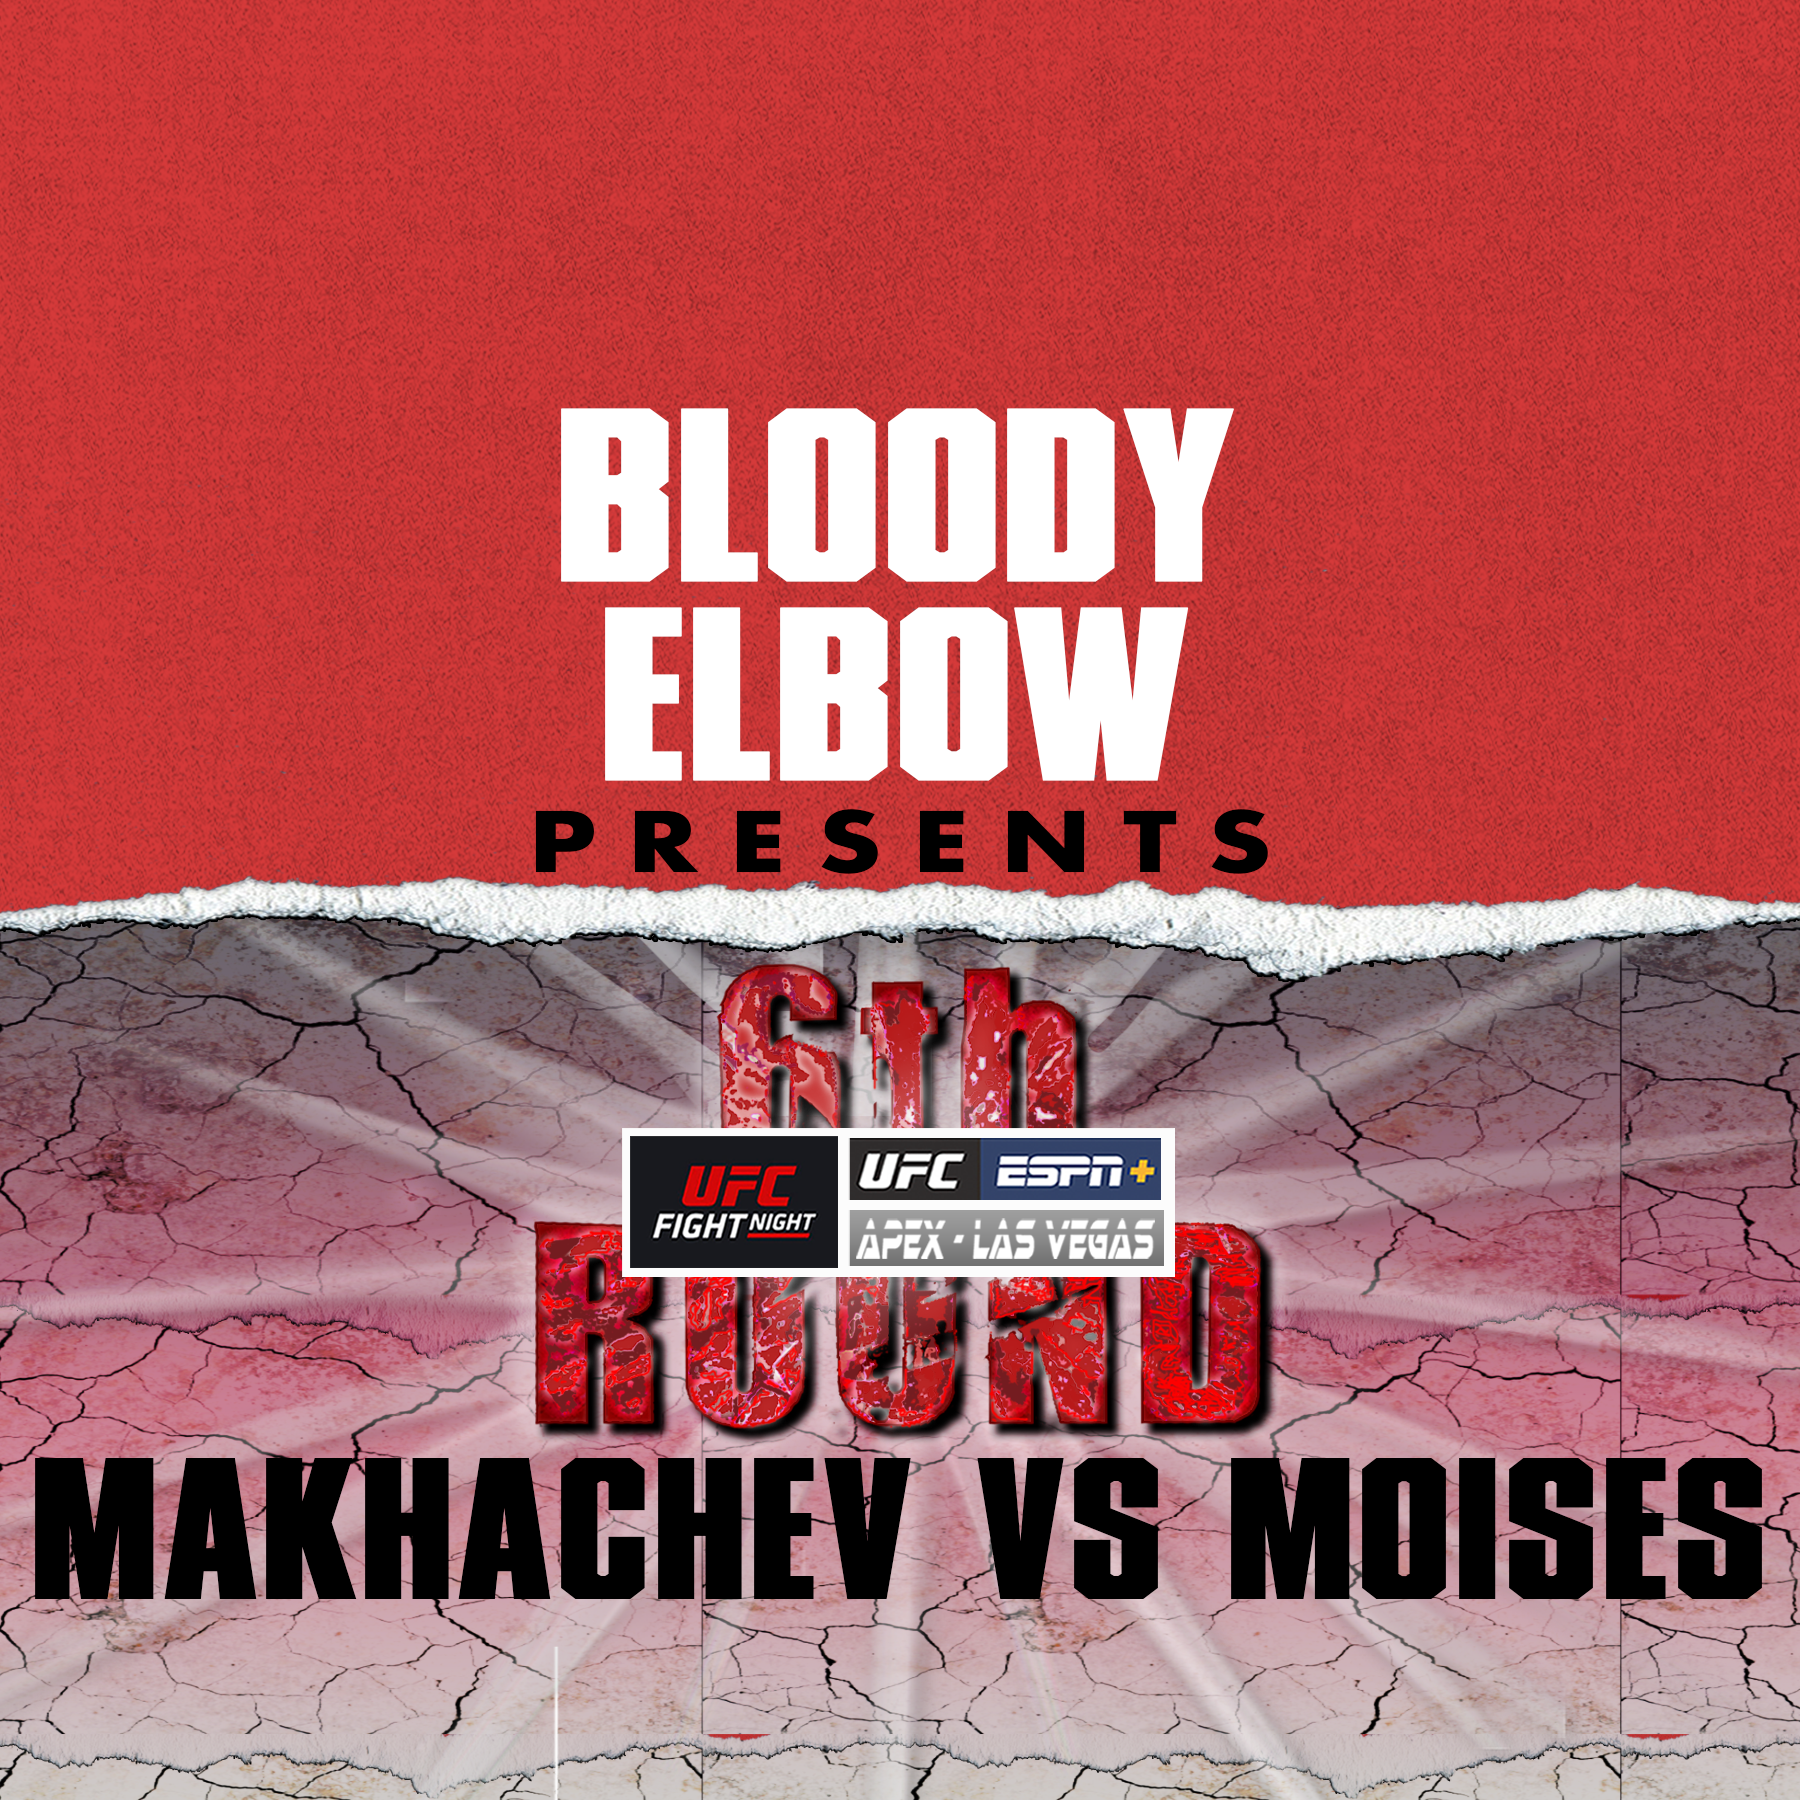 6th Round, The 6th Round Post-Fight Show, UFC Vegas 31, UFC Vegas 31 Post Fight Show, UFC Podcast, MMA Podcast, UFC Results, UFC Analysis, UFC Reactions, Makhachev vs Moises, Post Fight Show,